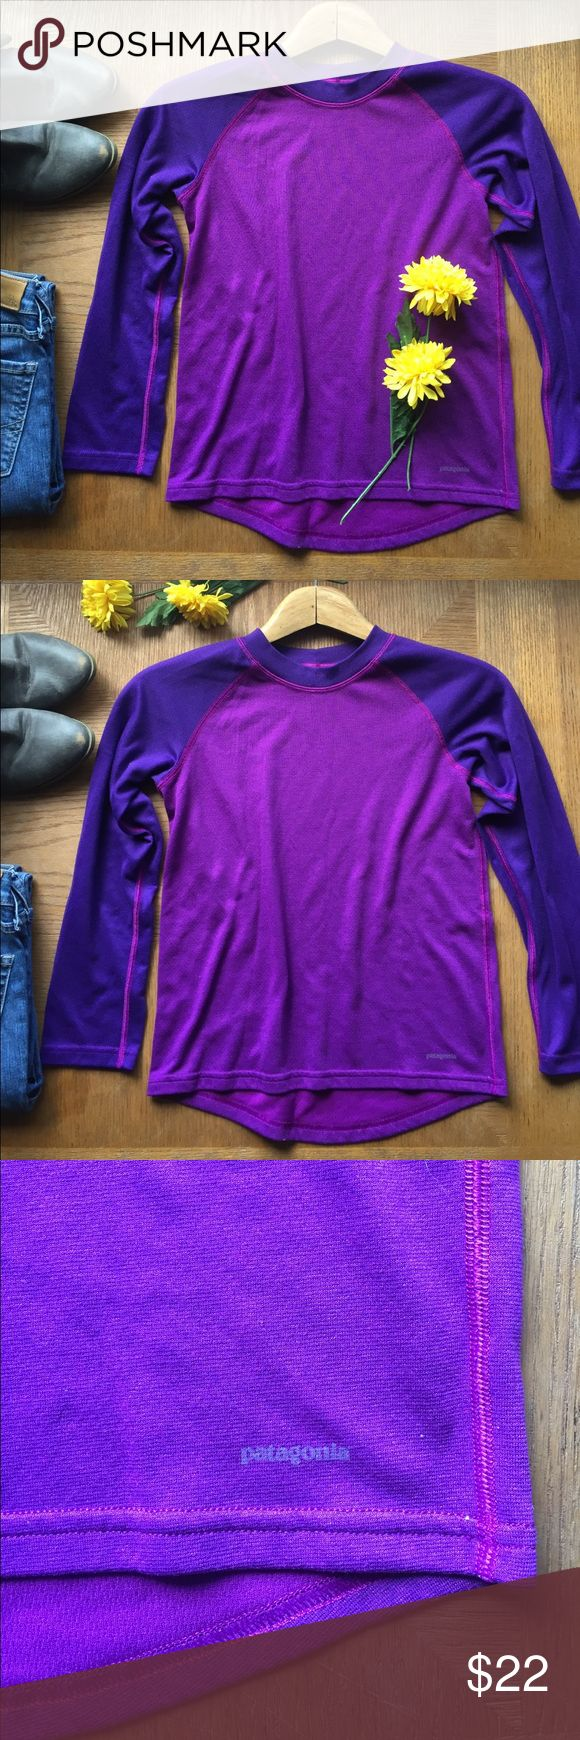 Patagonia Capilene 3 Midweight Base Top Patagonia Capilene 3 Midweight purple long sleeve top.  Slight high low top.  In great condition. Patagonia Shirts & Tops